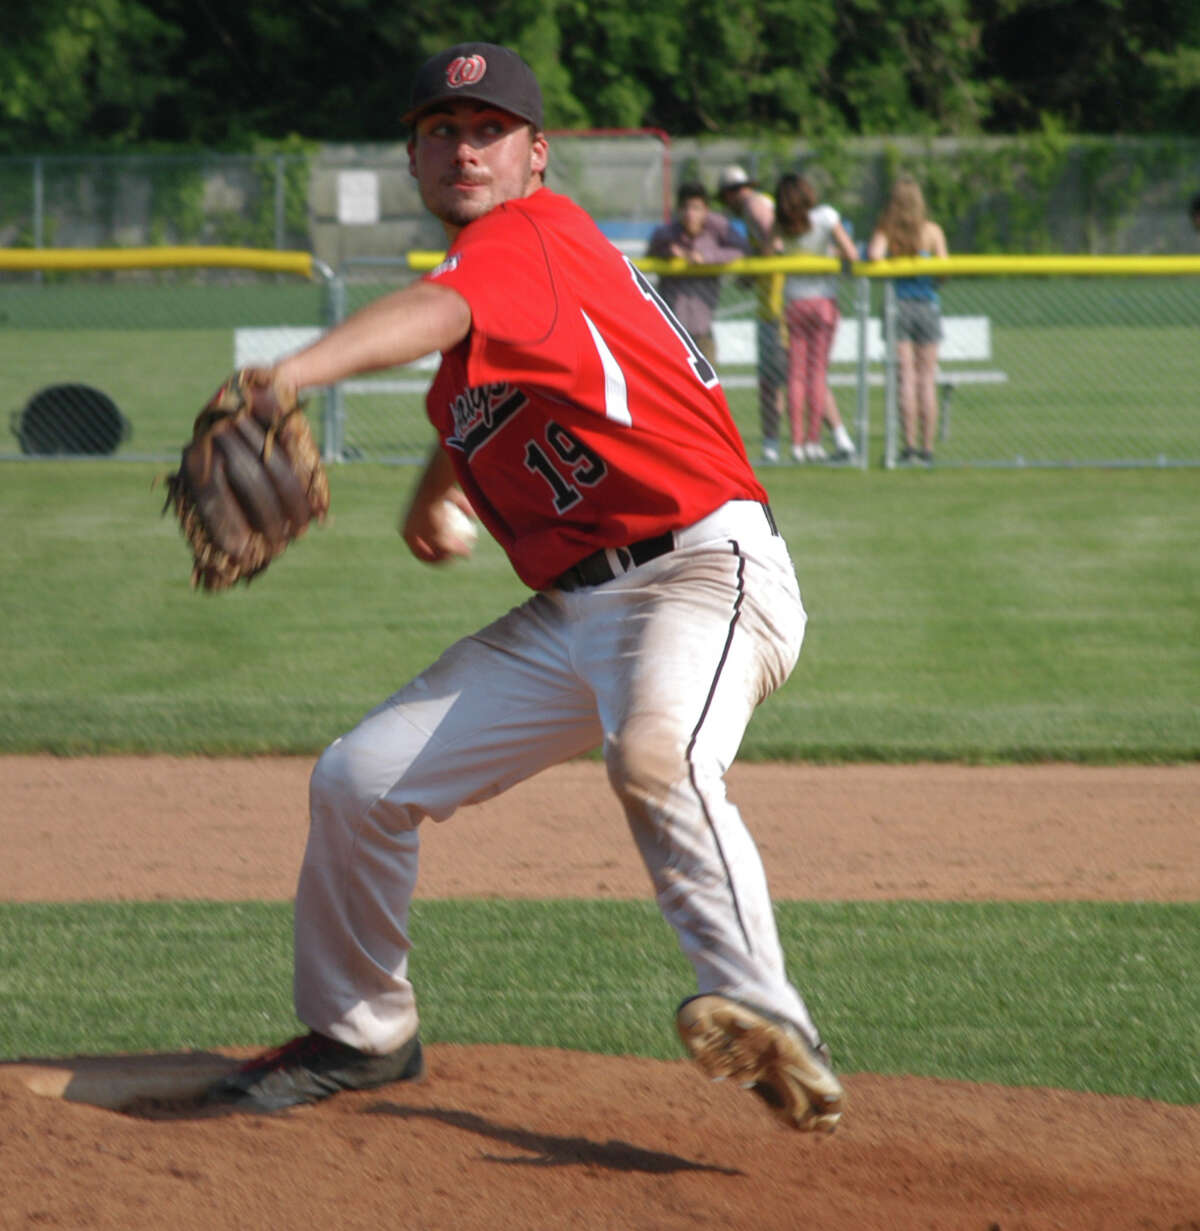 Fairfield Warde pitcher Nick Nardone on the mound against Staples in a CIAC Class LL baseball second-round game on Tuesday, June 3 in Westport. The Mustangs advanced to the quarterfinals by defeating the Wreckers.